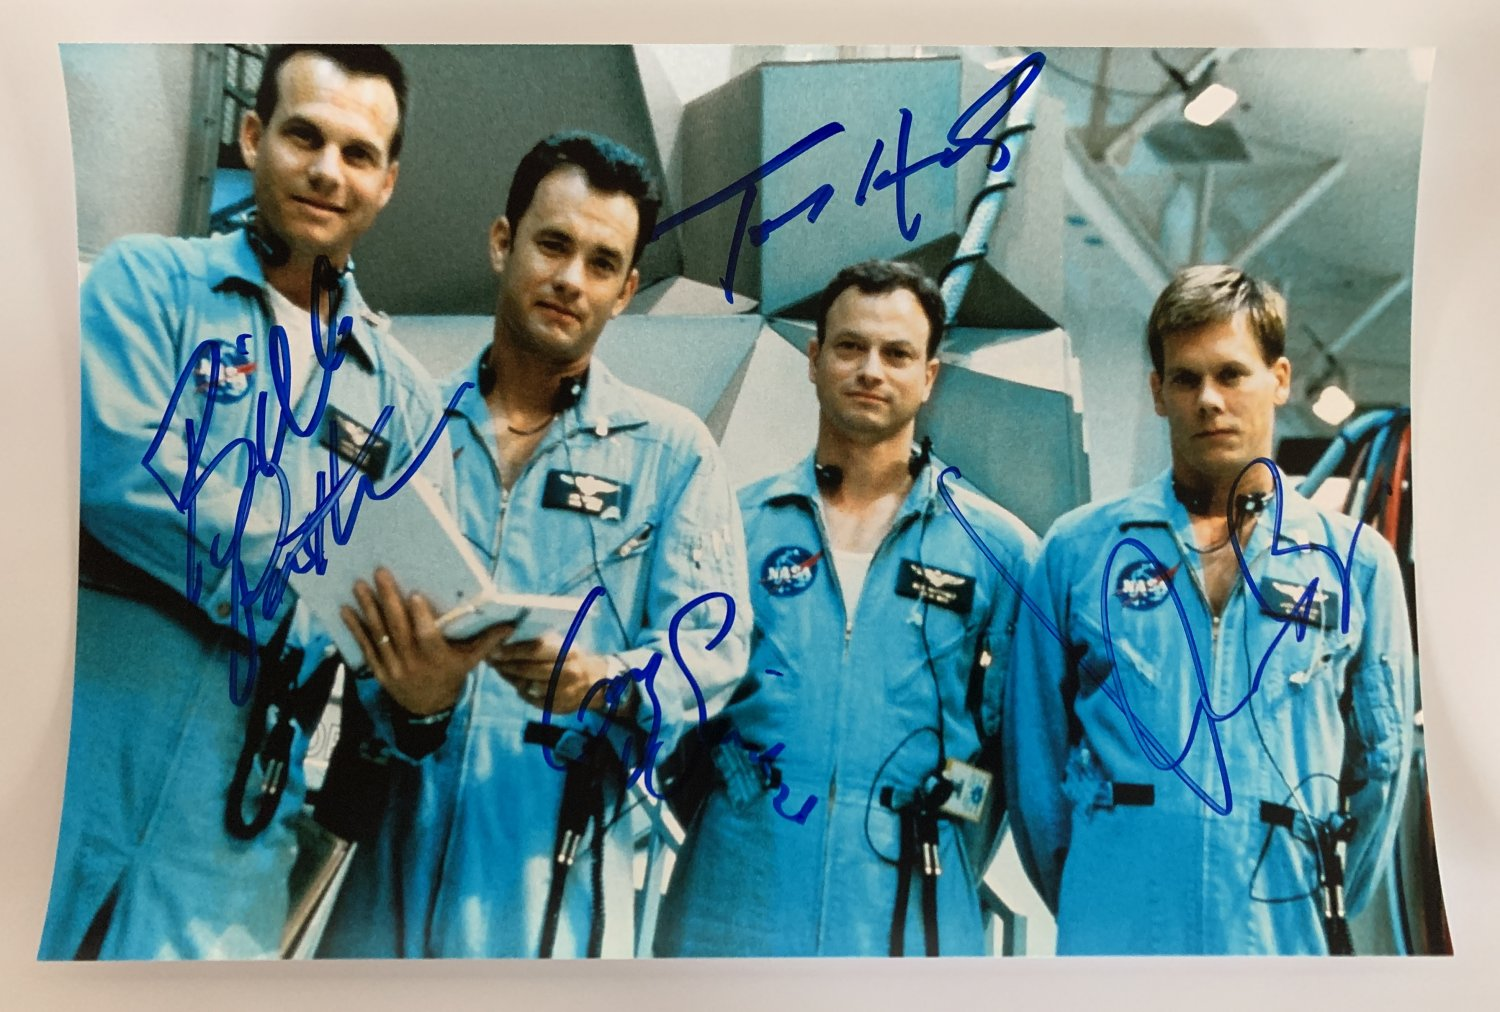 Apollo 13 cast signed autographed 8x12 photo photograph Tom Hanks Bill Paxton